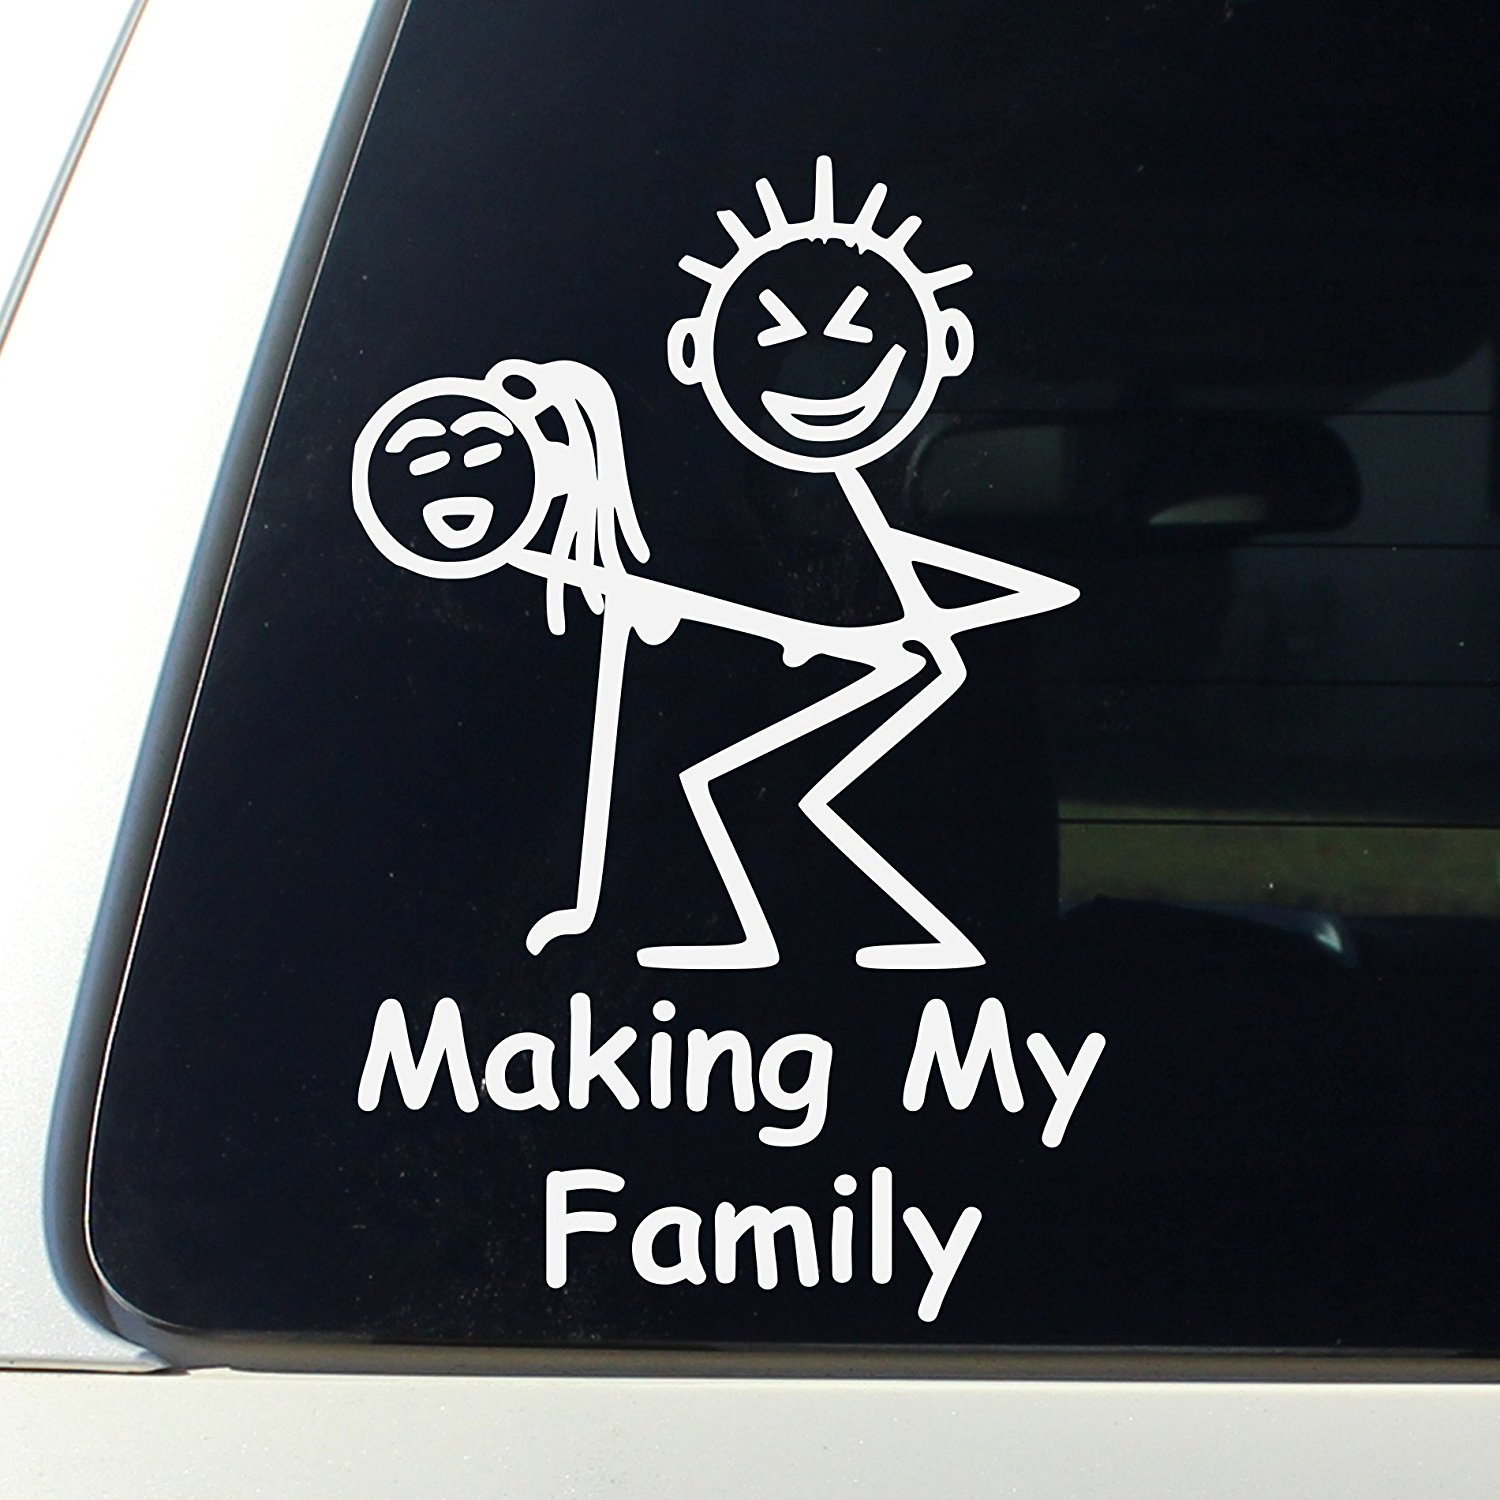 Making my family funny stick figure family decal bumper sticker window funny jeep stickers